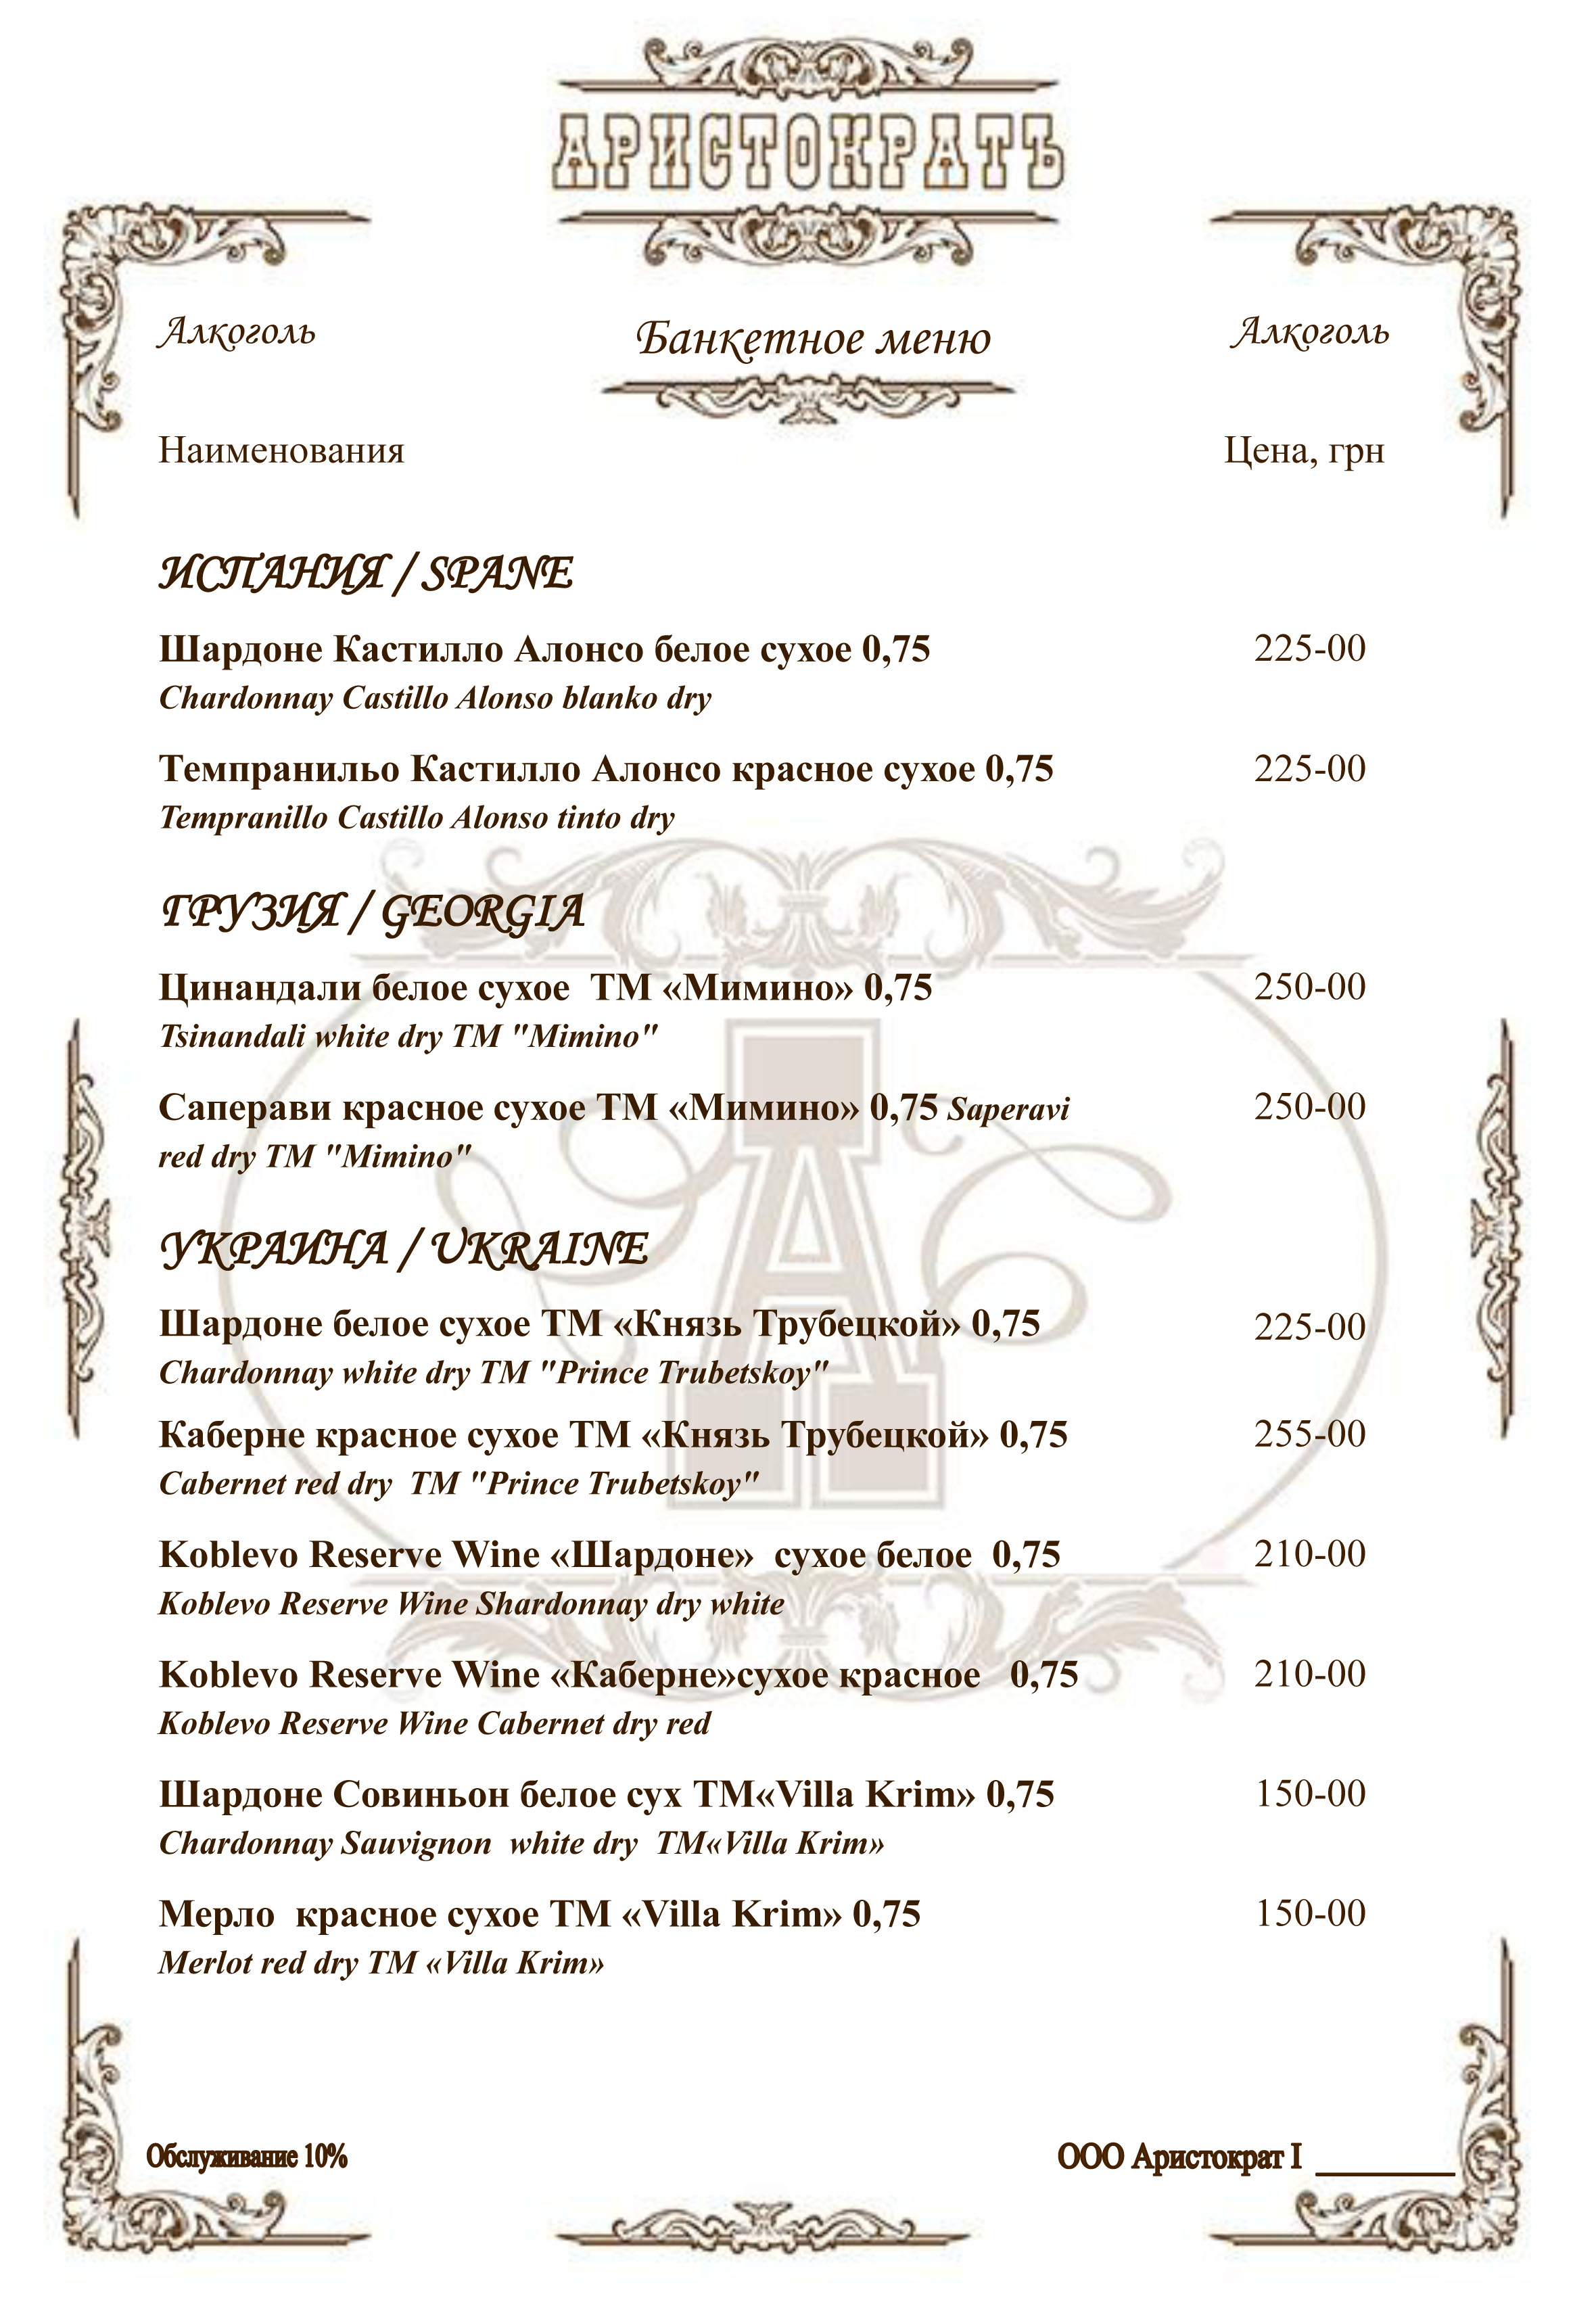 Restaurant menu - Alcohol